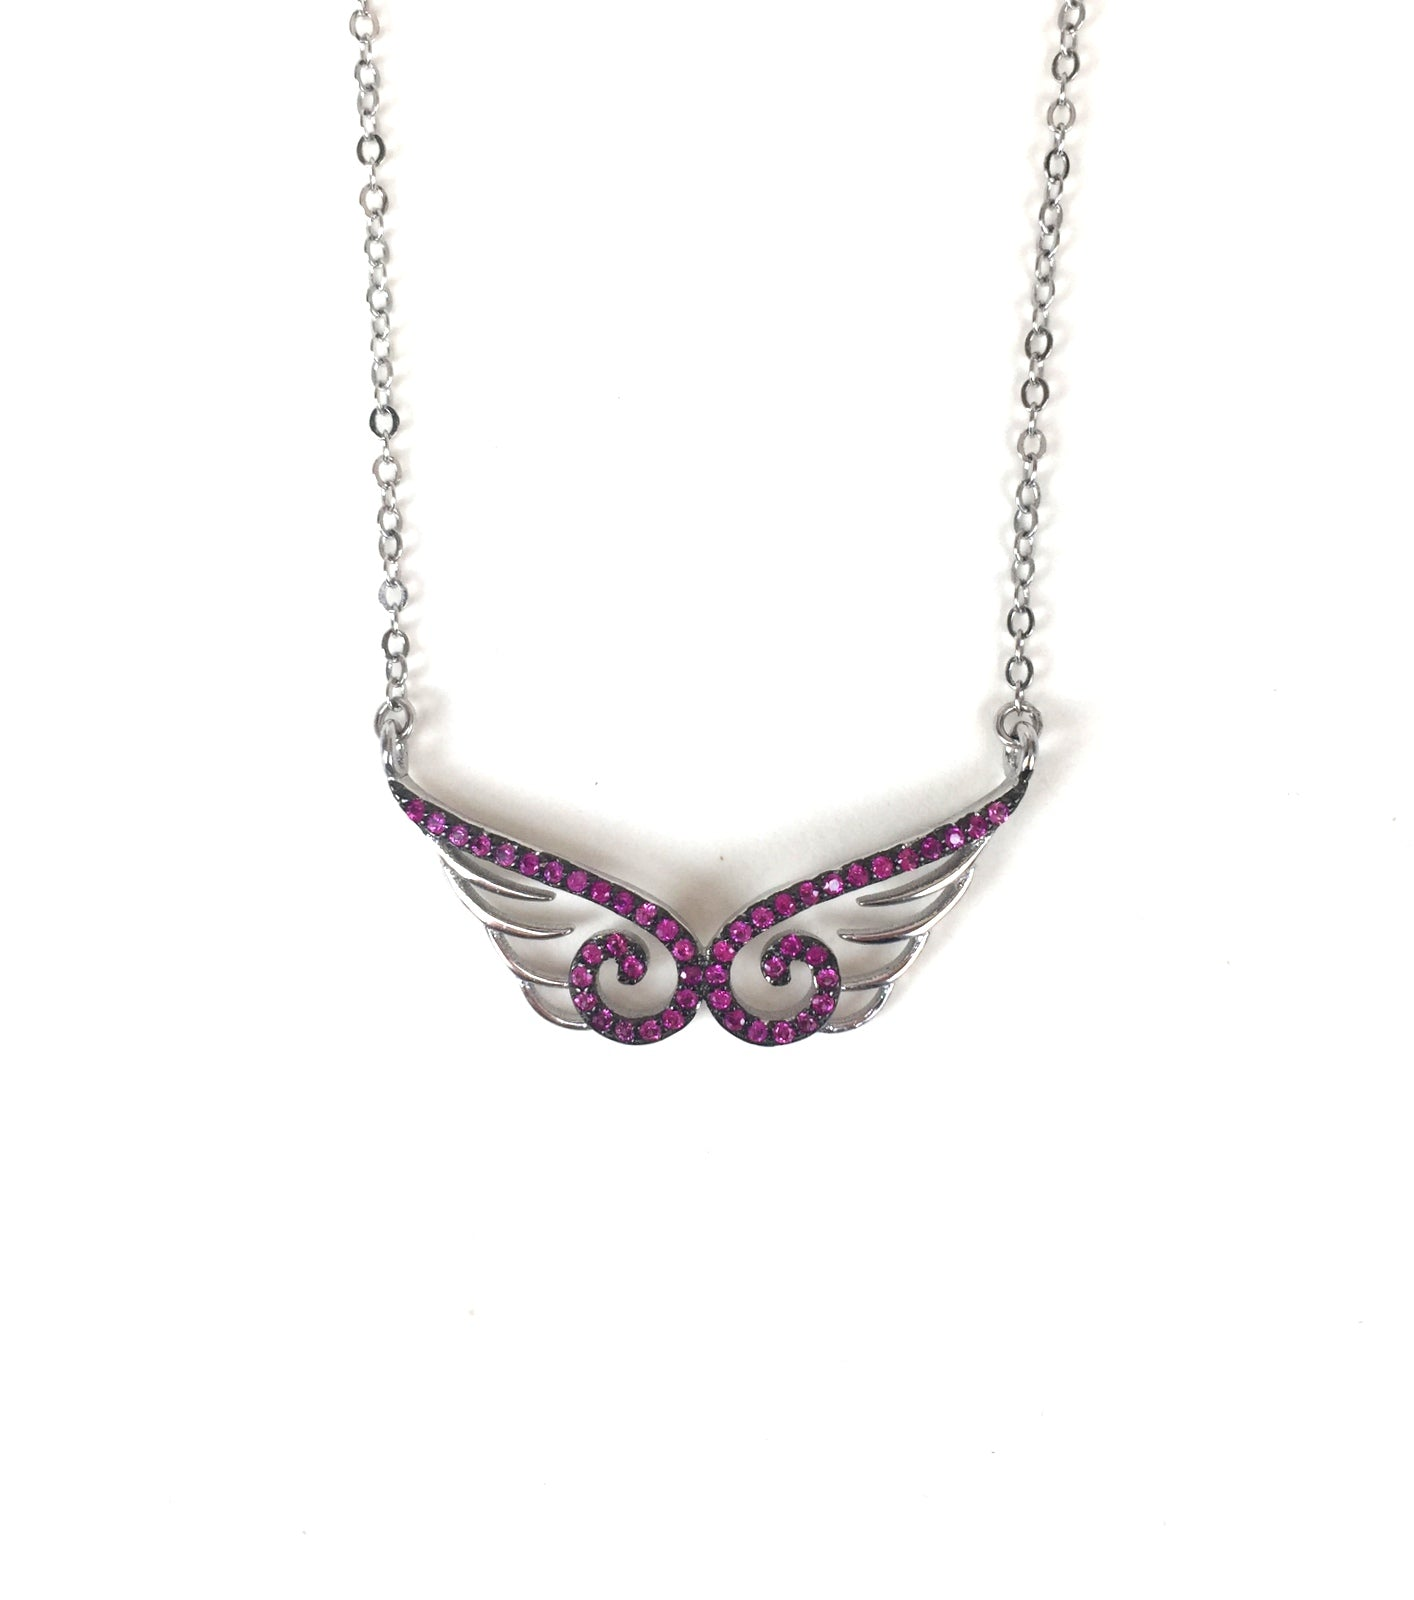 WINGS PAVE CZ STERLING SILVER NECKLACE